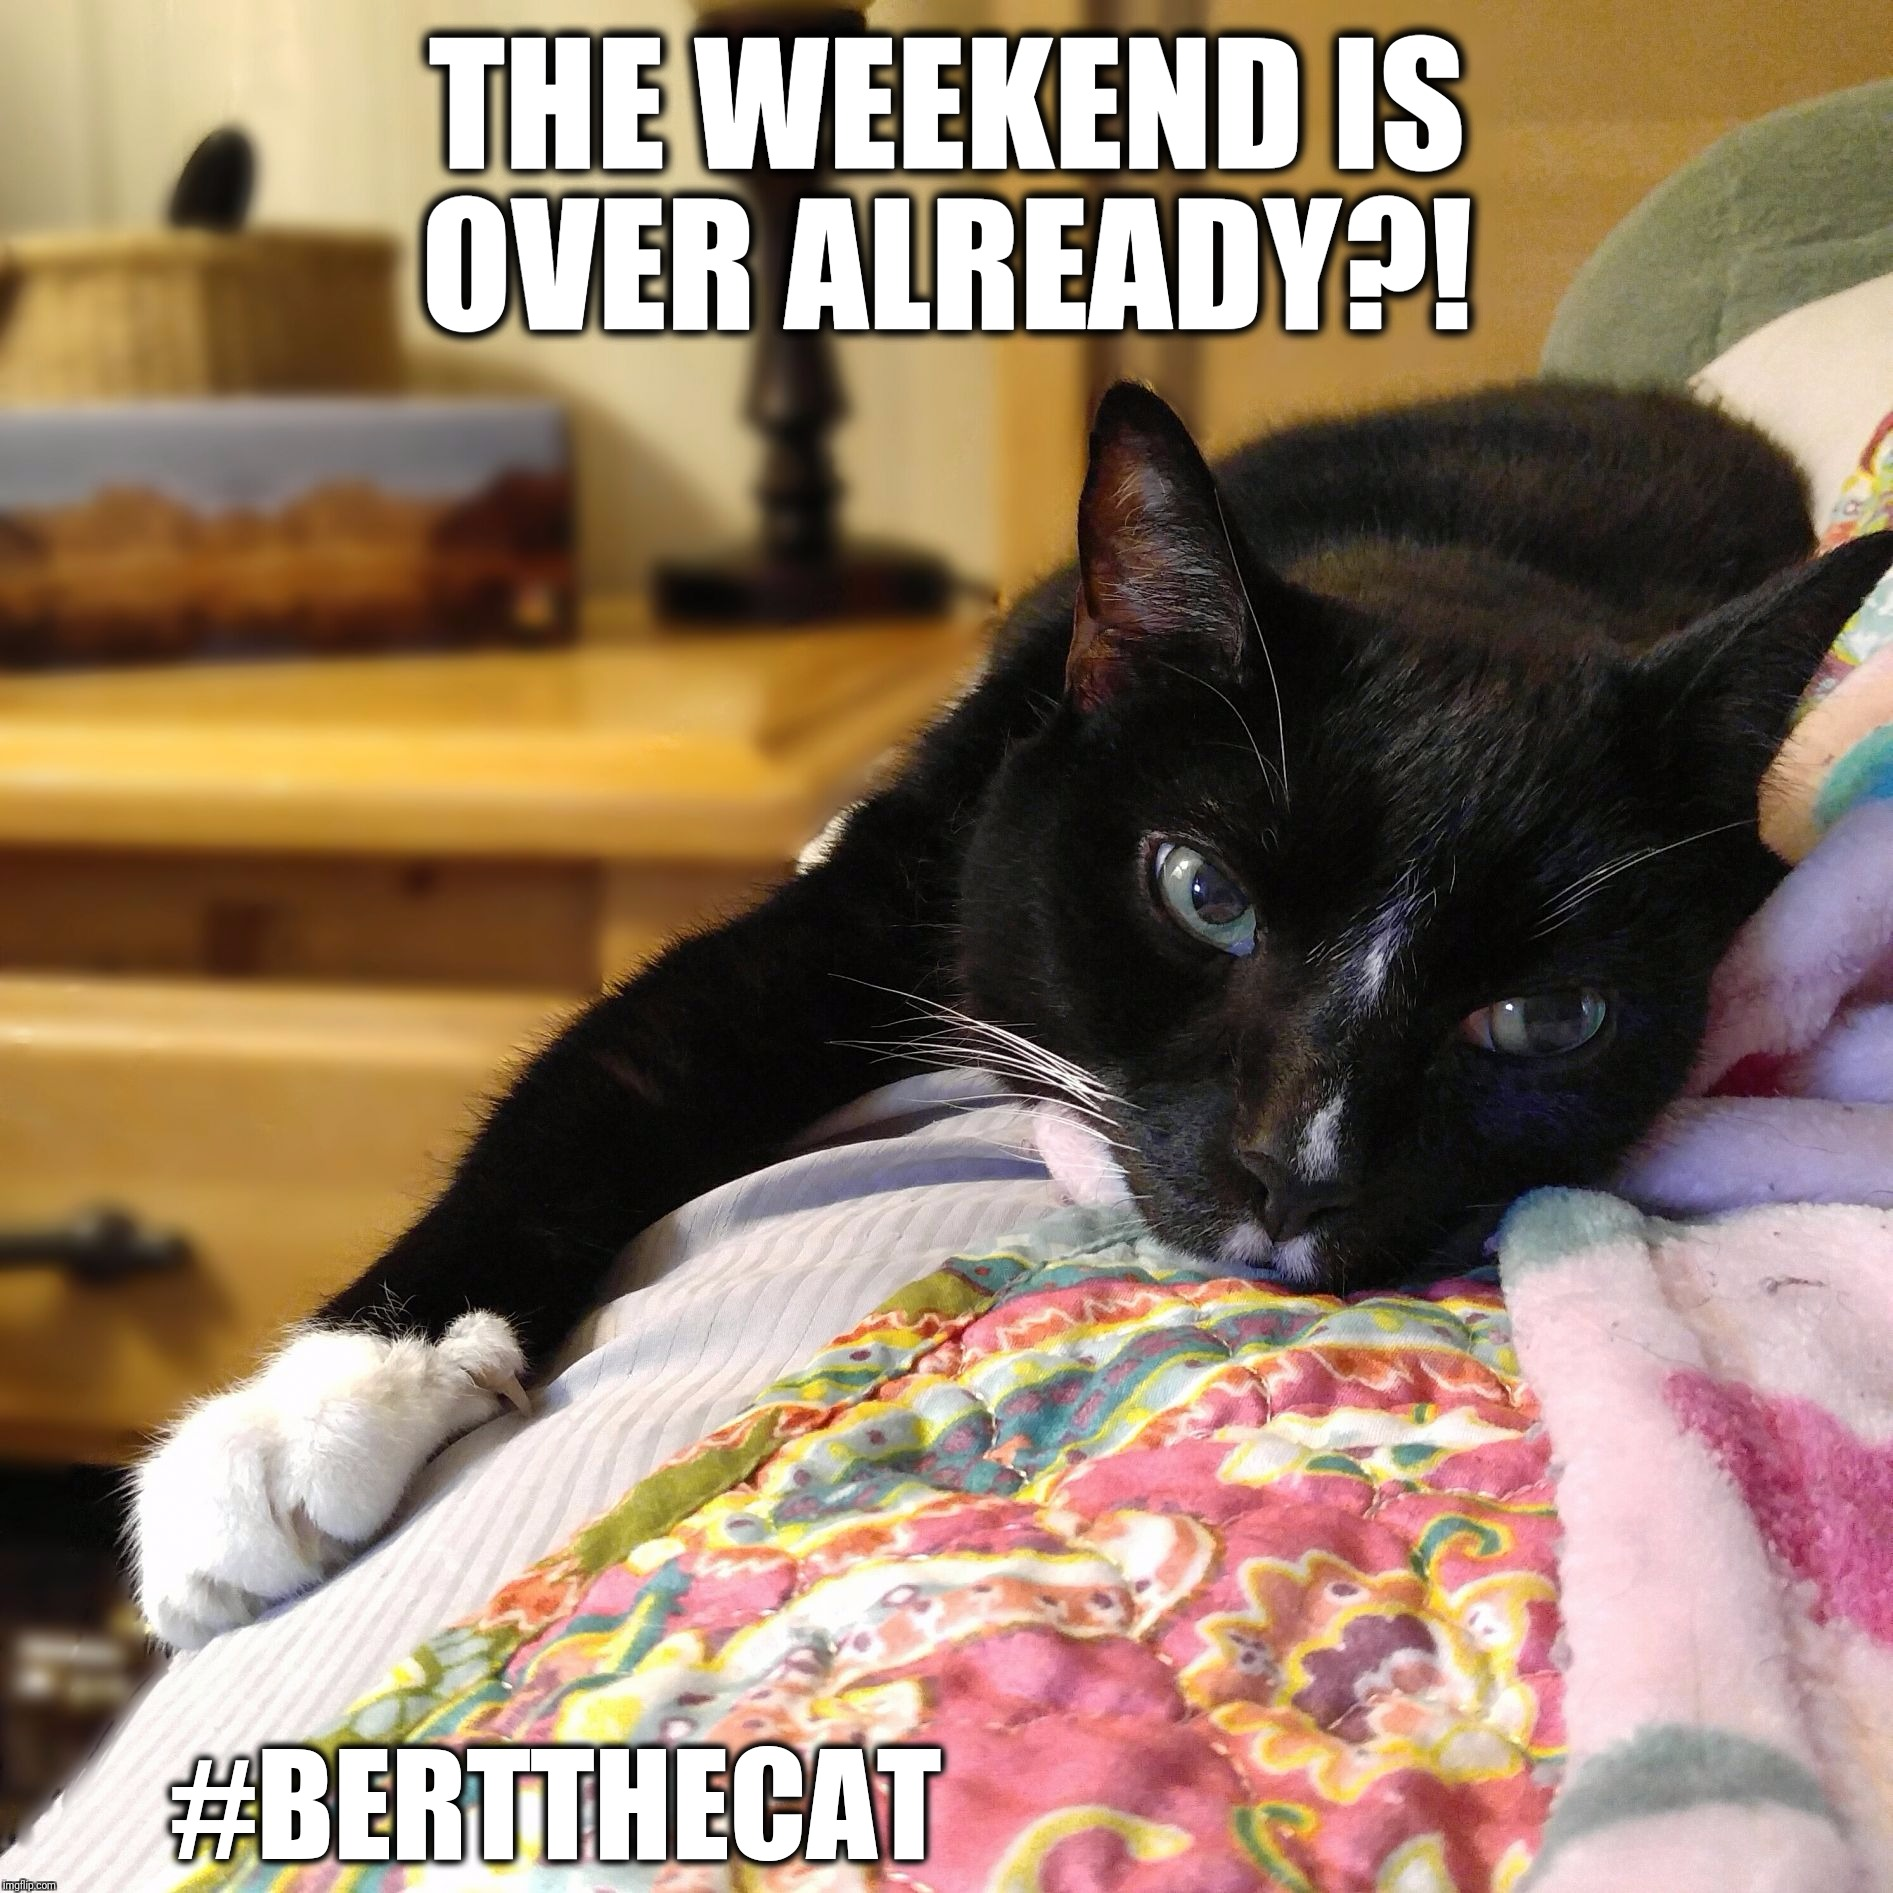 The weekend is over already?!  | THE WEEKEND IS OVER ALREADY?! #BERTTHECAT | image tagged in bert the cat,the weekend is over,weekend,memes,cute,cats | made w/ Imgflip meme maker